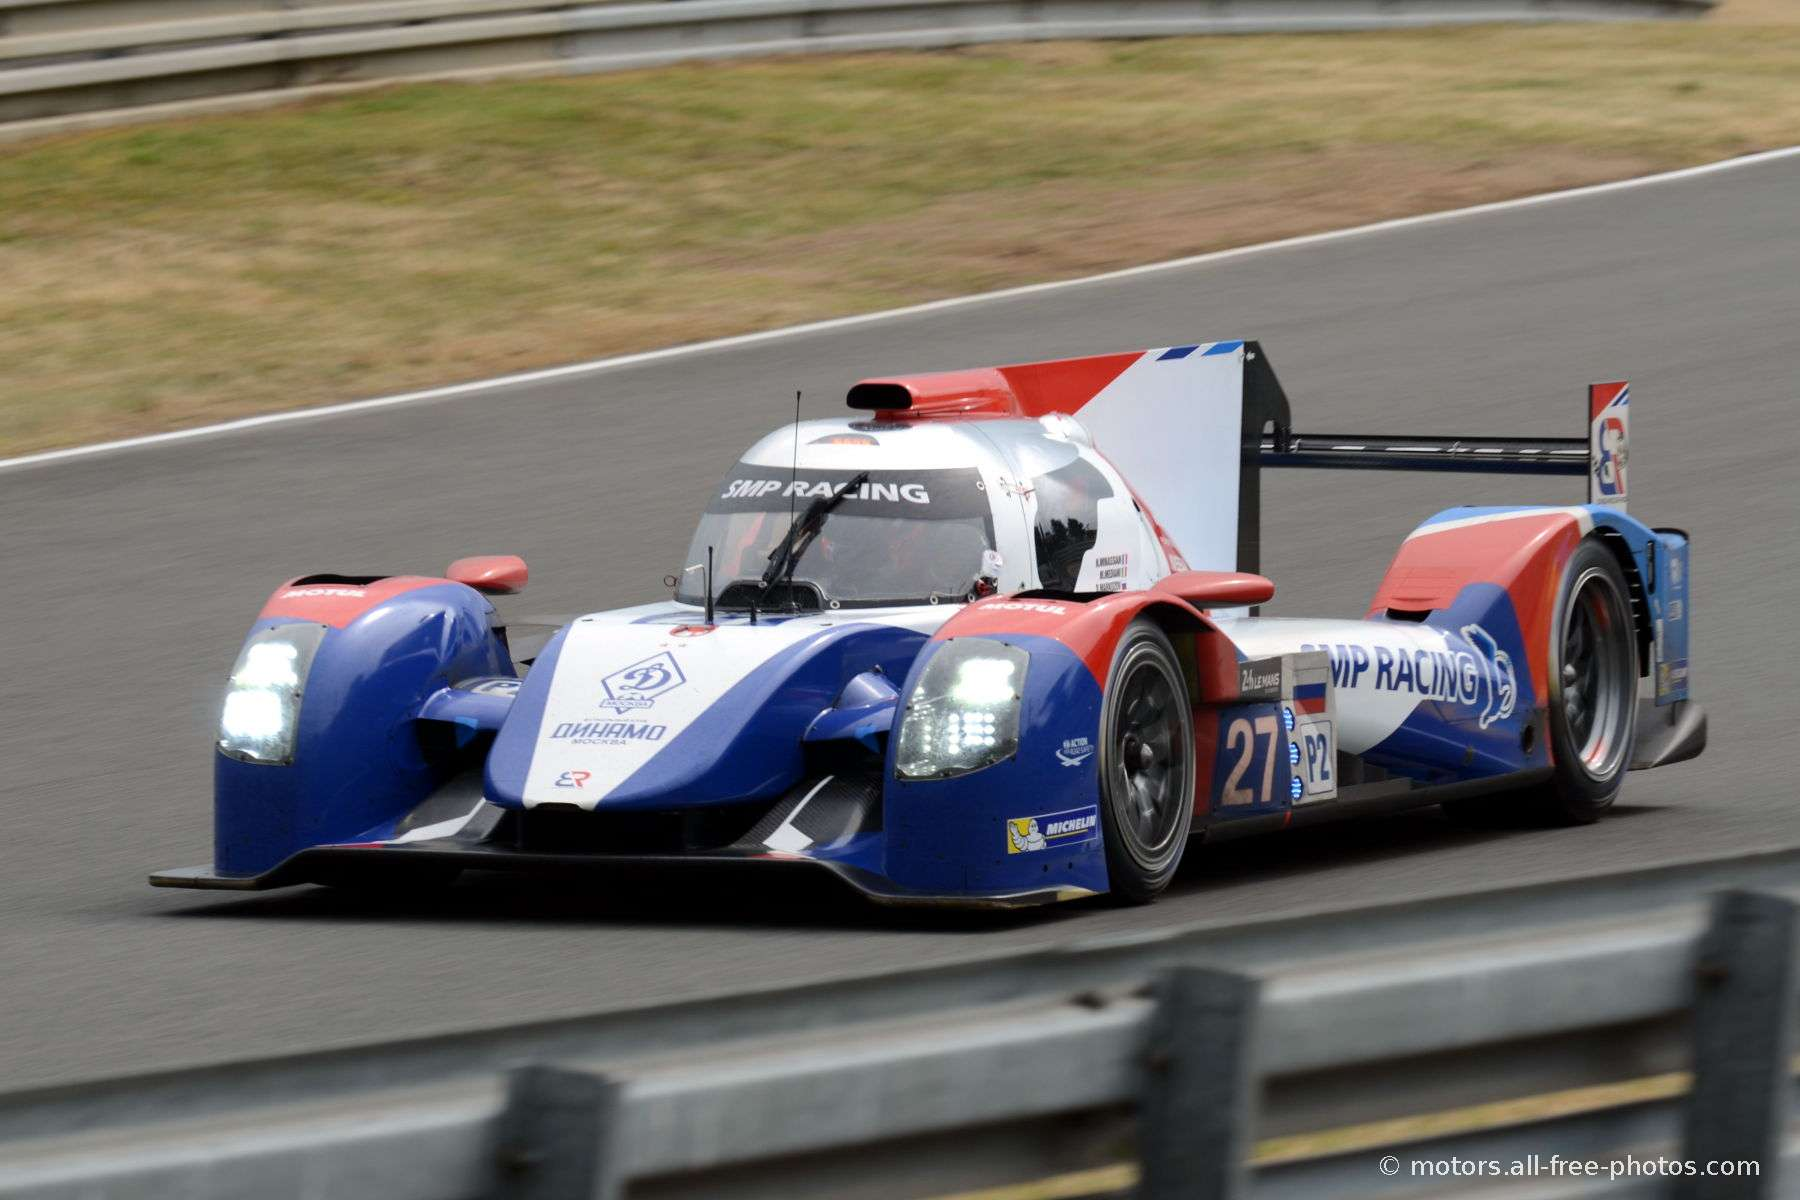 Home galleries motorsport le mans 2015 lmp br01 nissan team smp